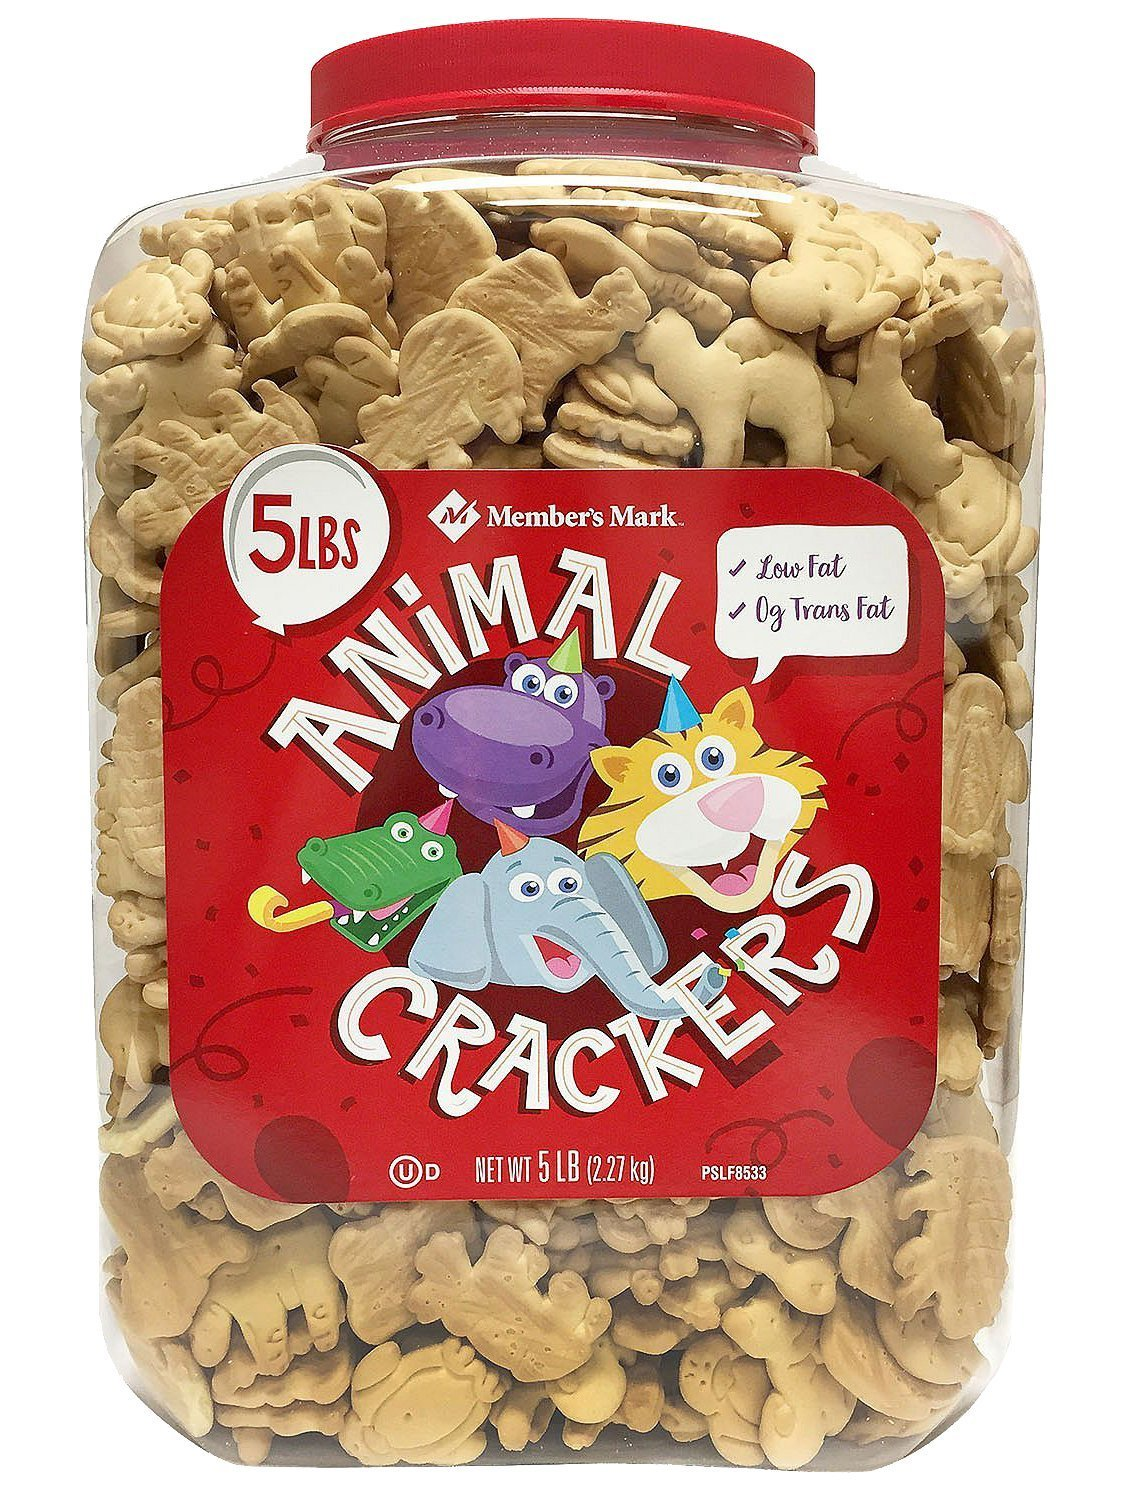 Member's Mark Animal Crackers (5 lbs.)